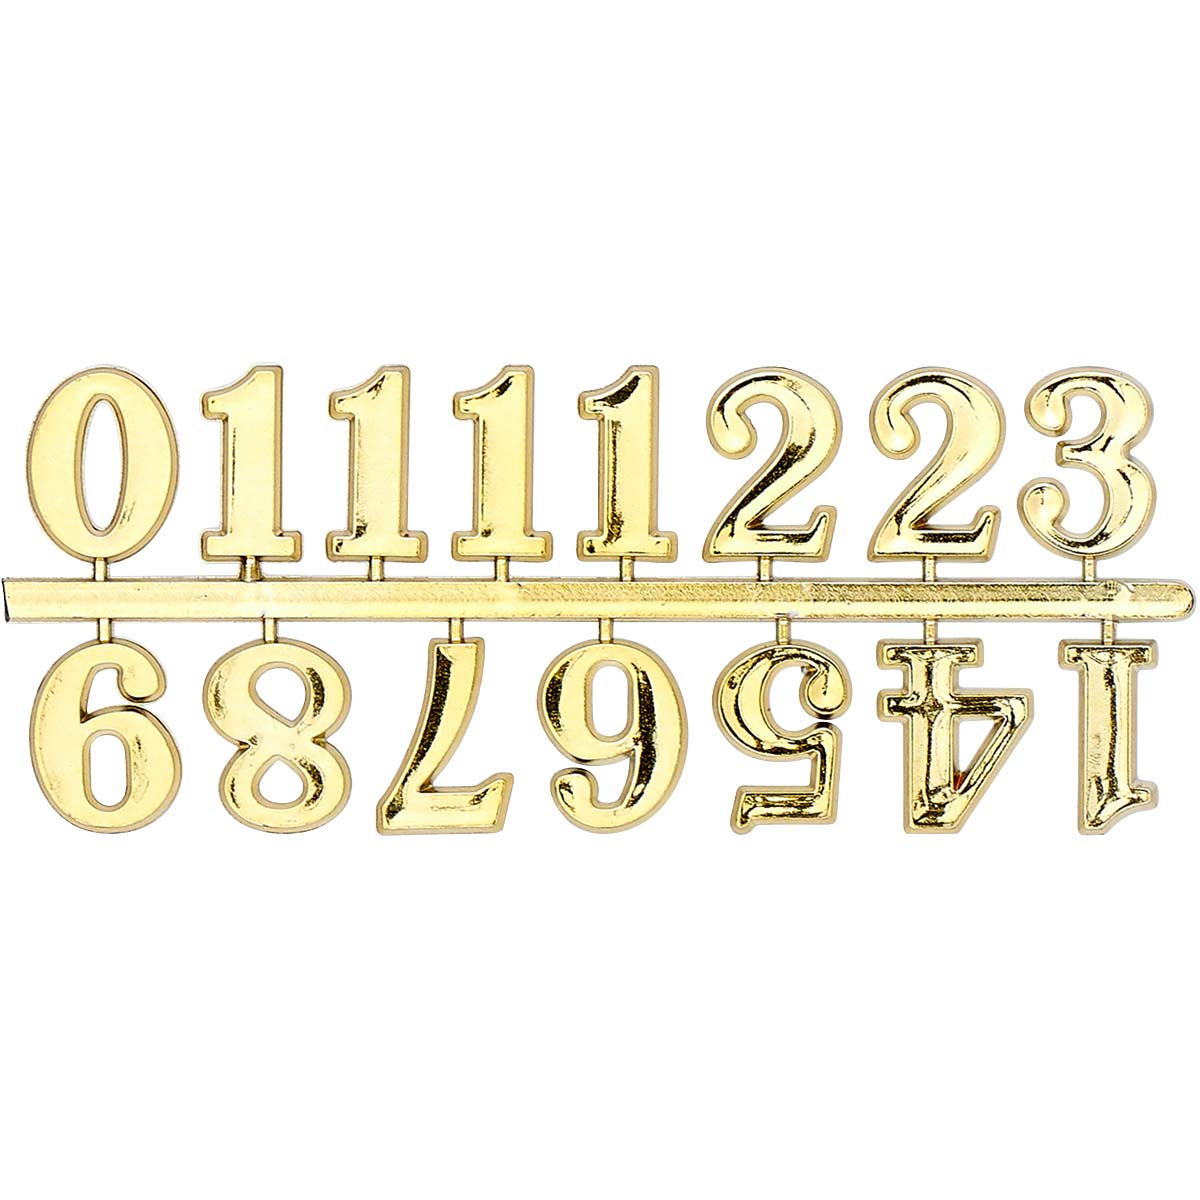 Plaid ® Accessories - Clock Numbers - Gold, 1